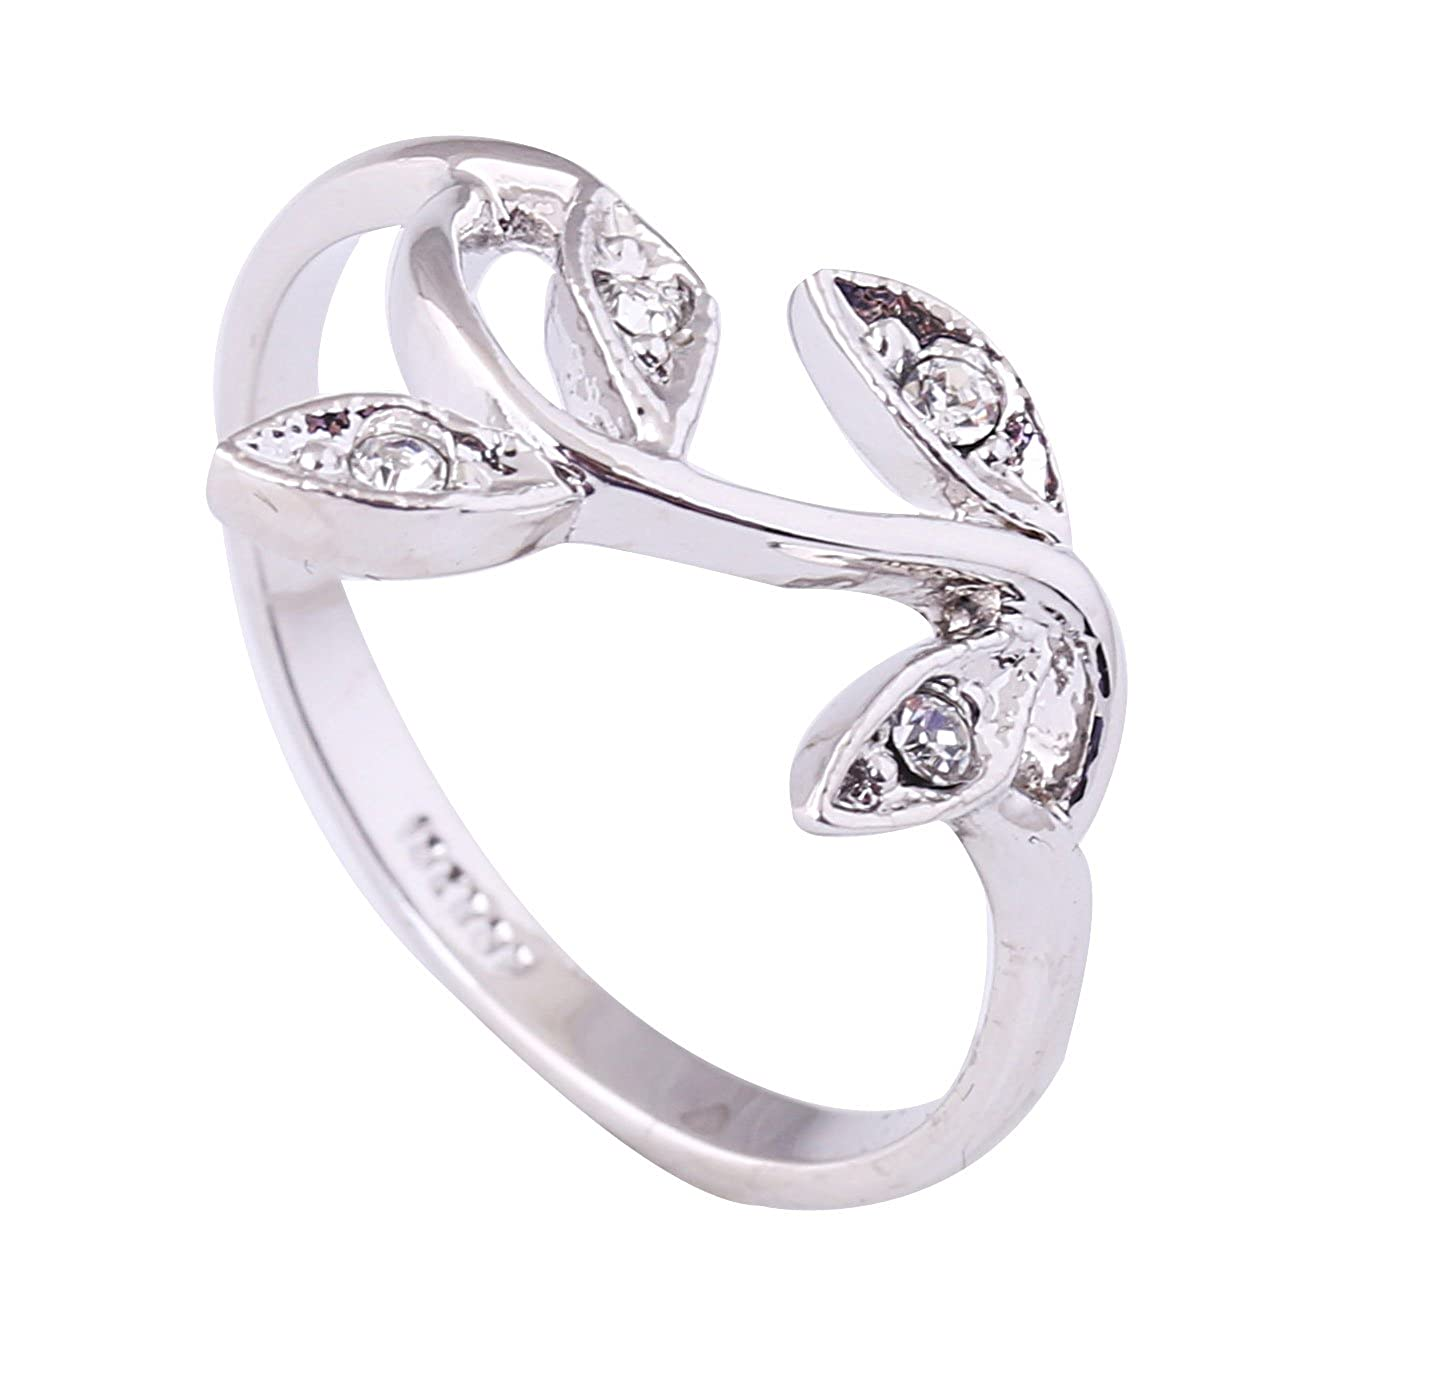 Acefeel 18K White Gold Plated Czech Drilling Leaves Vines Womens Fashion Ring Valentine's Day Gift R027